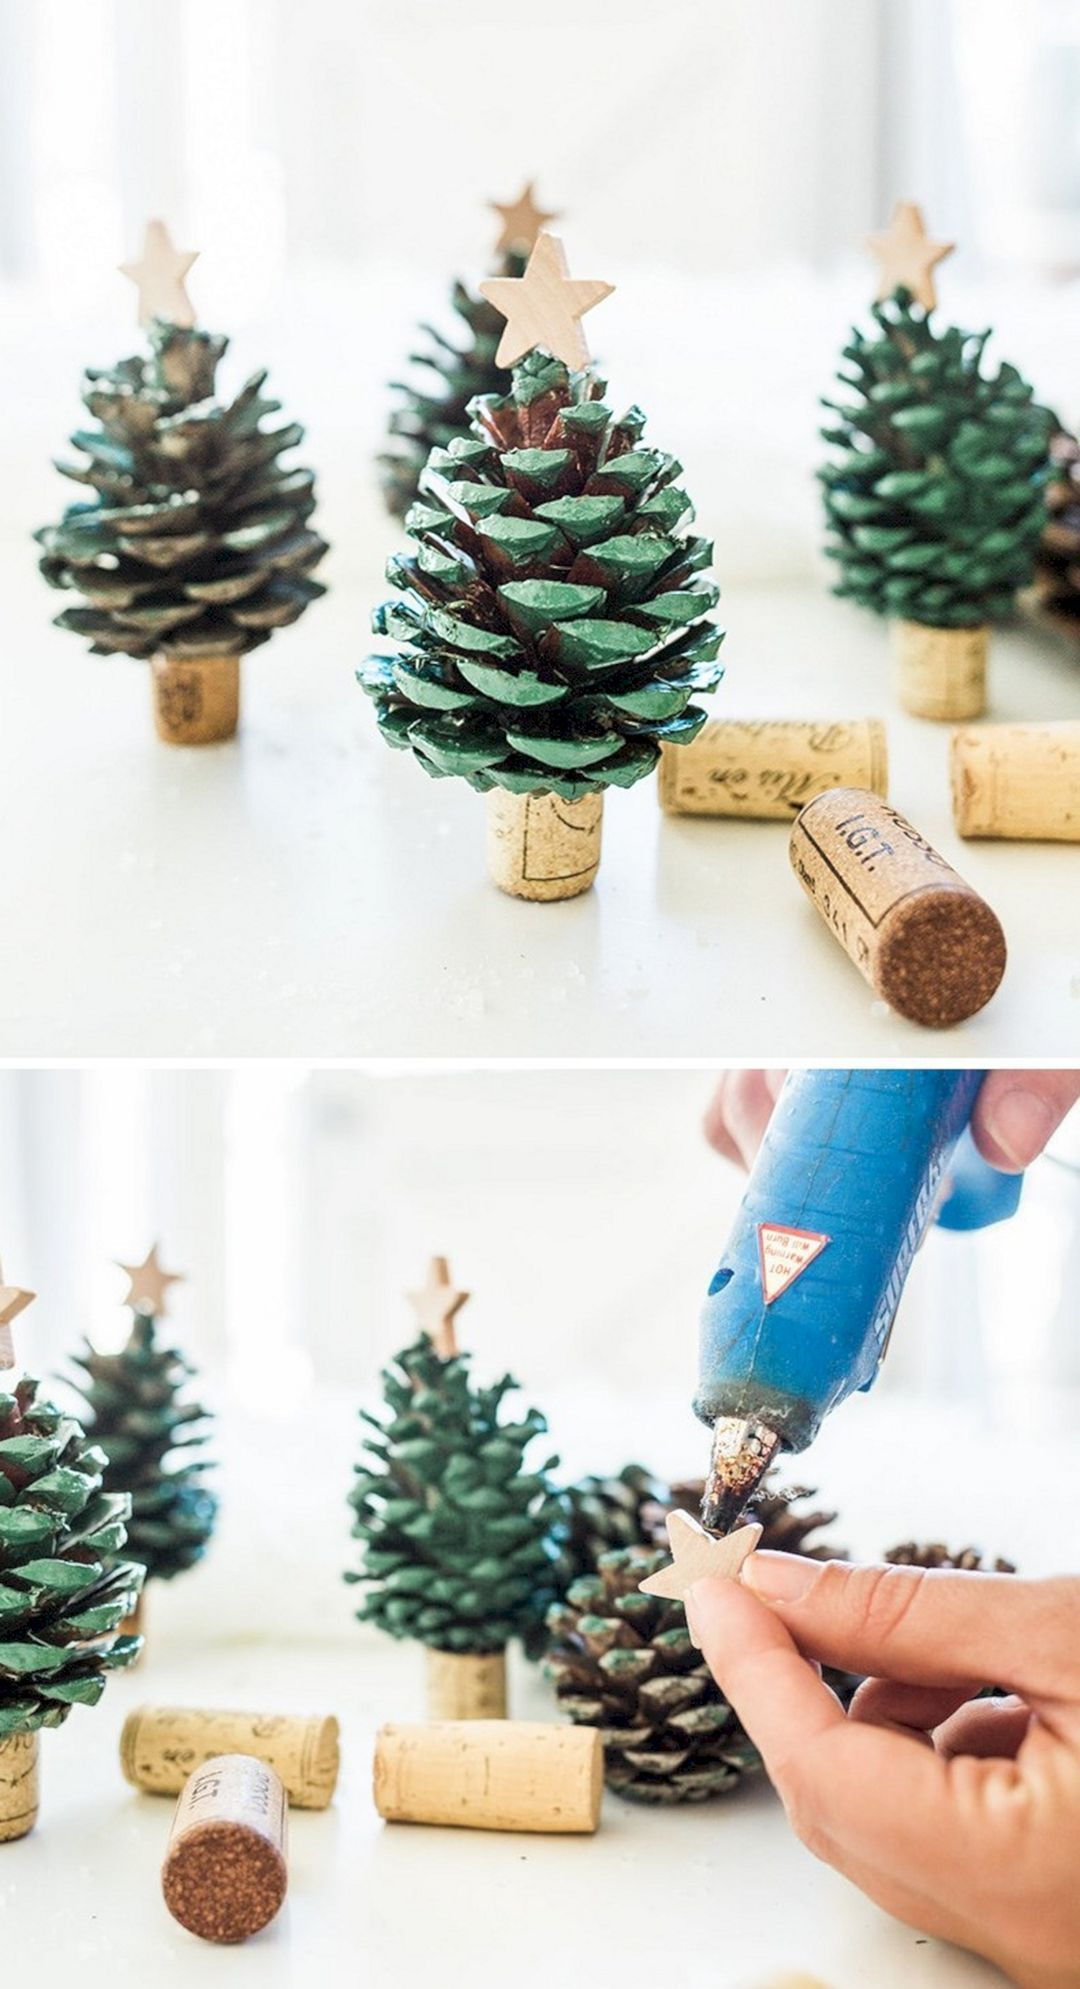 Best Wine Cork Ideas For Home Decorations 53053 #xmasdecorations